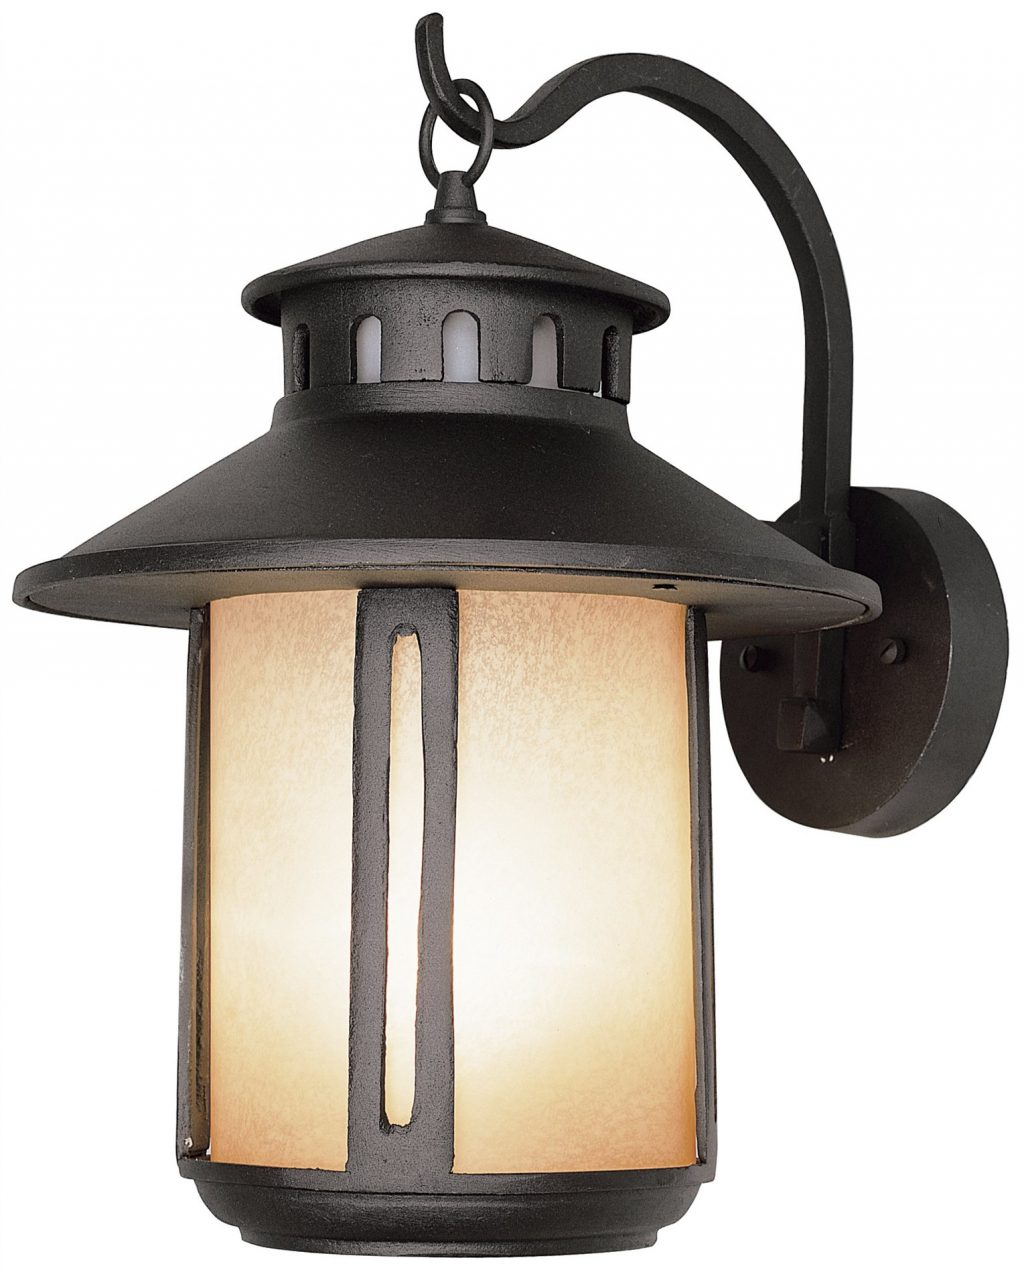 Trans Globe Lighting 5951 Bk Craftsman Transitional Outdoor Wall